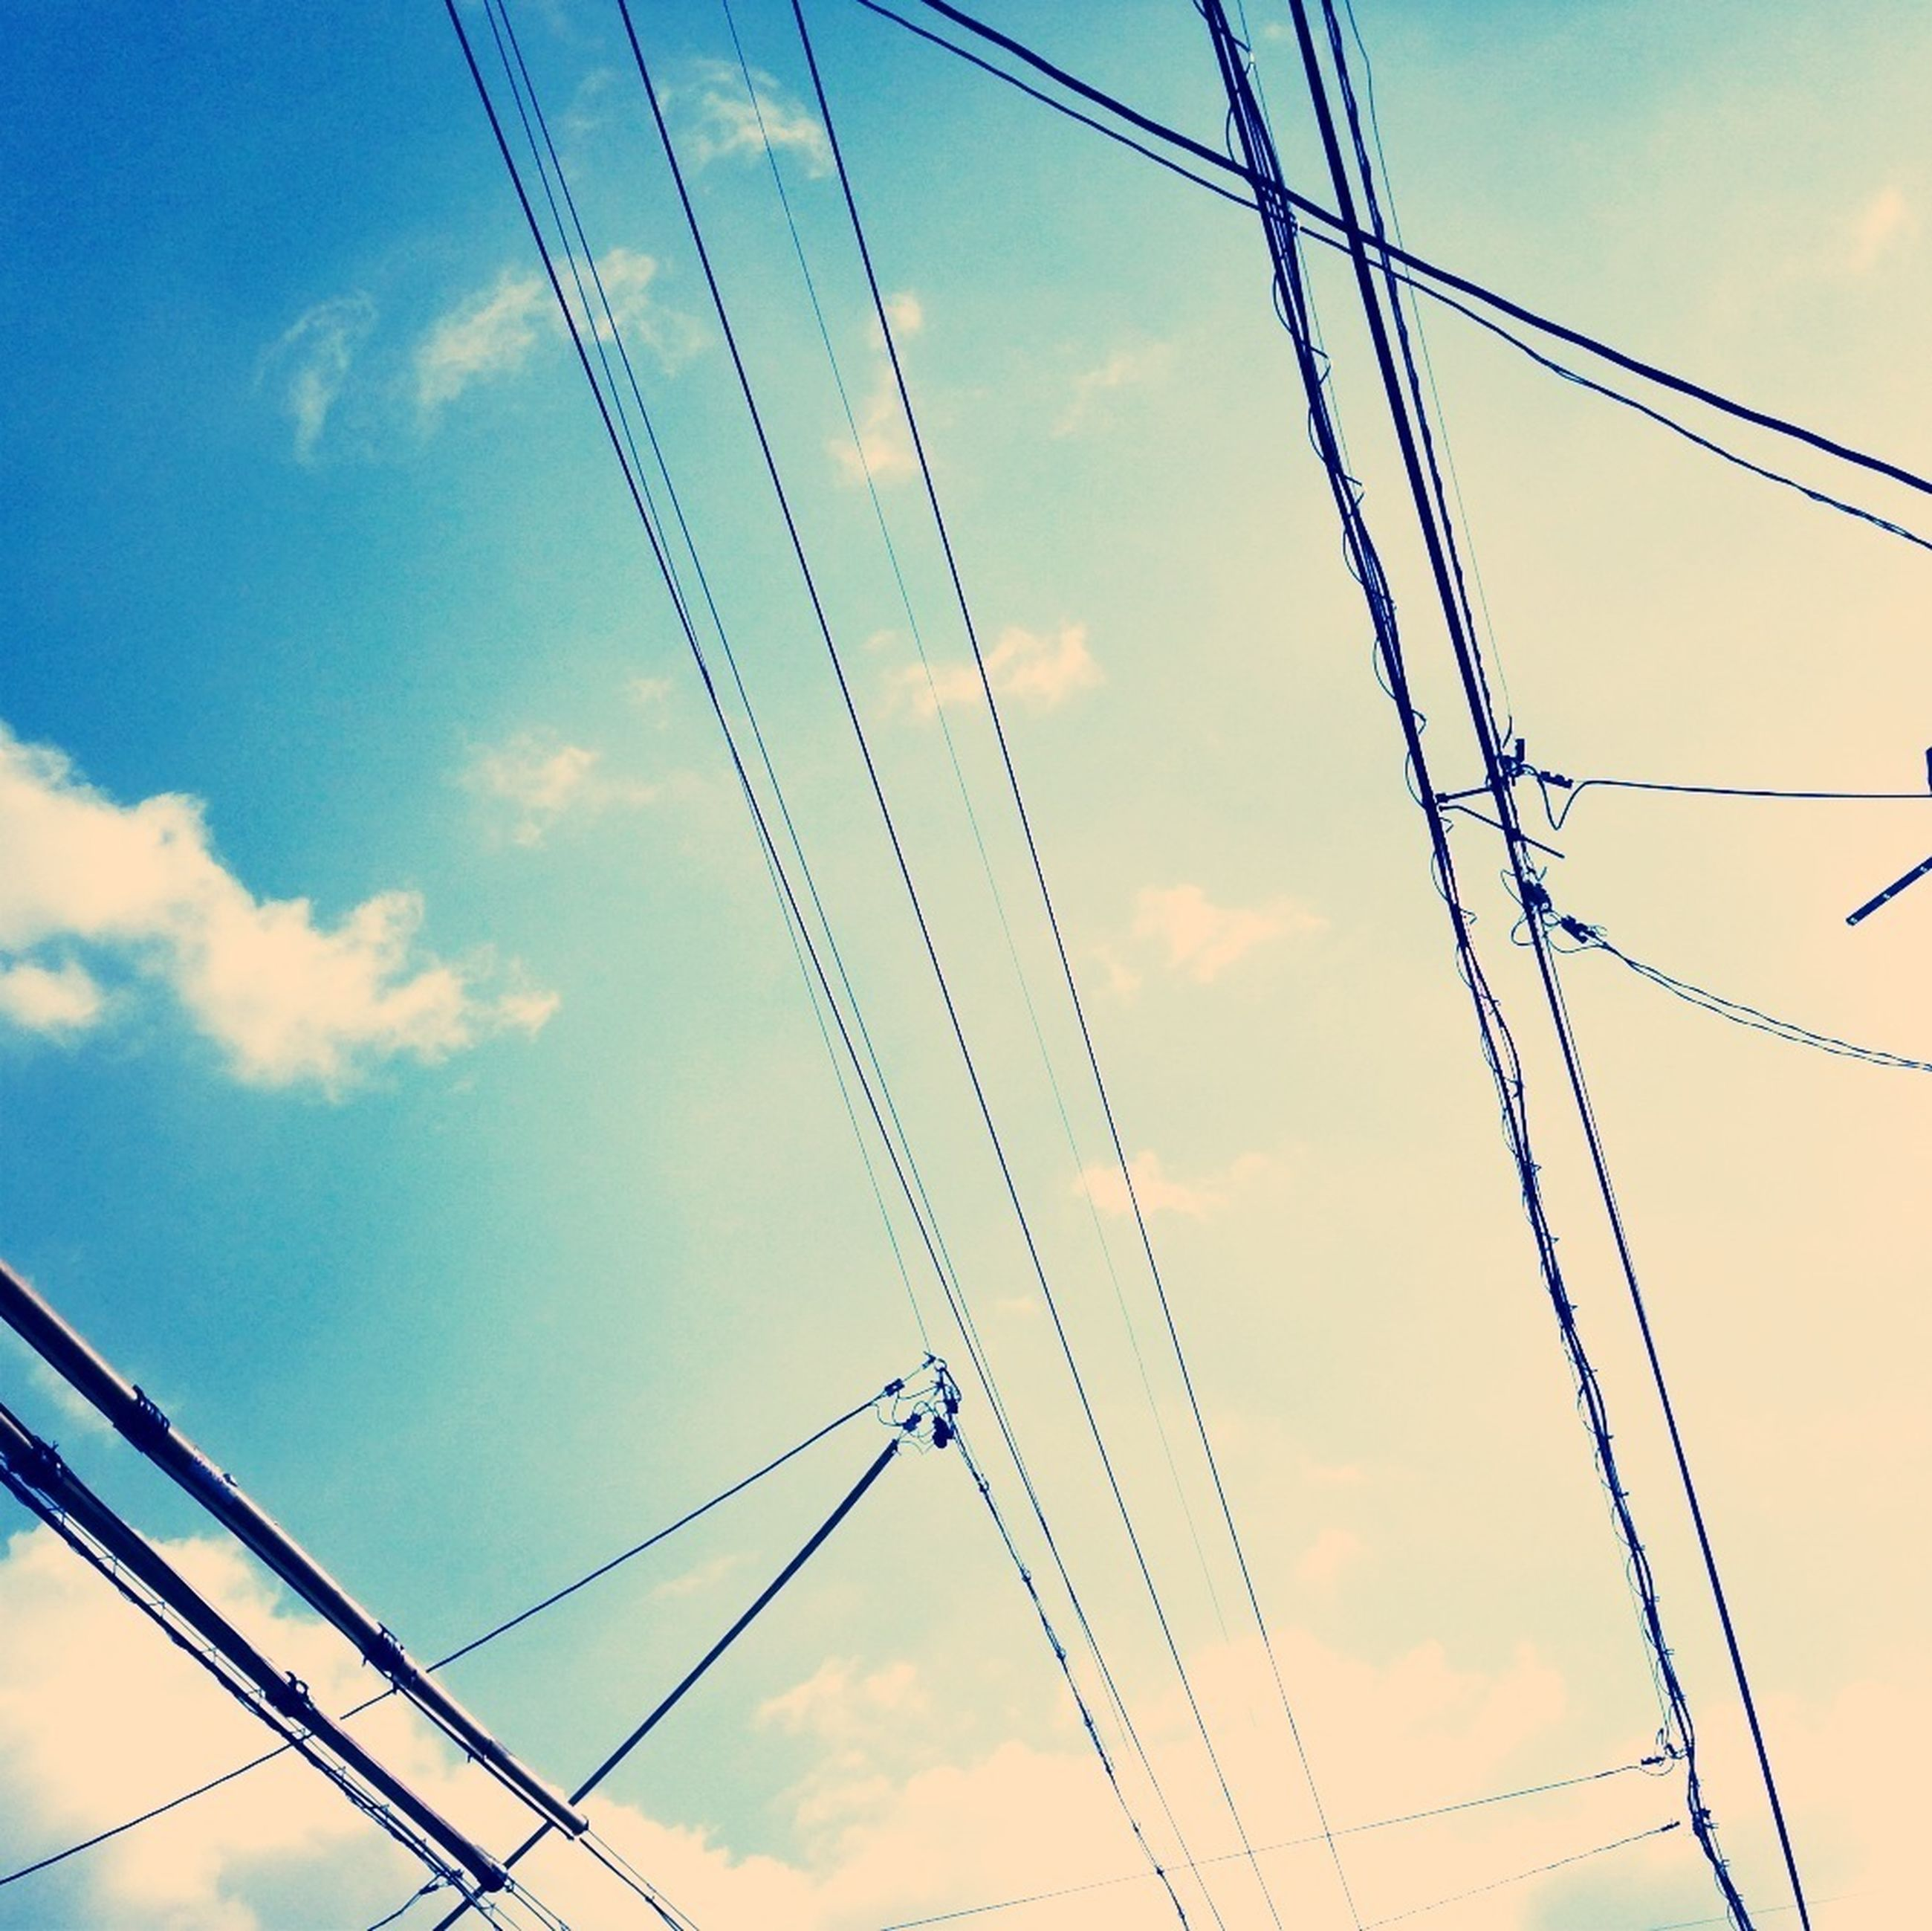 power line, cable, power supply, electricity pylon, low angle view, electricity, connection, sky, fuel and power generation, technology, cloud - sky, power cable, cloud, blue, complexity, outdoors, no people, cloudy, day, telephone pole